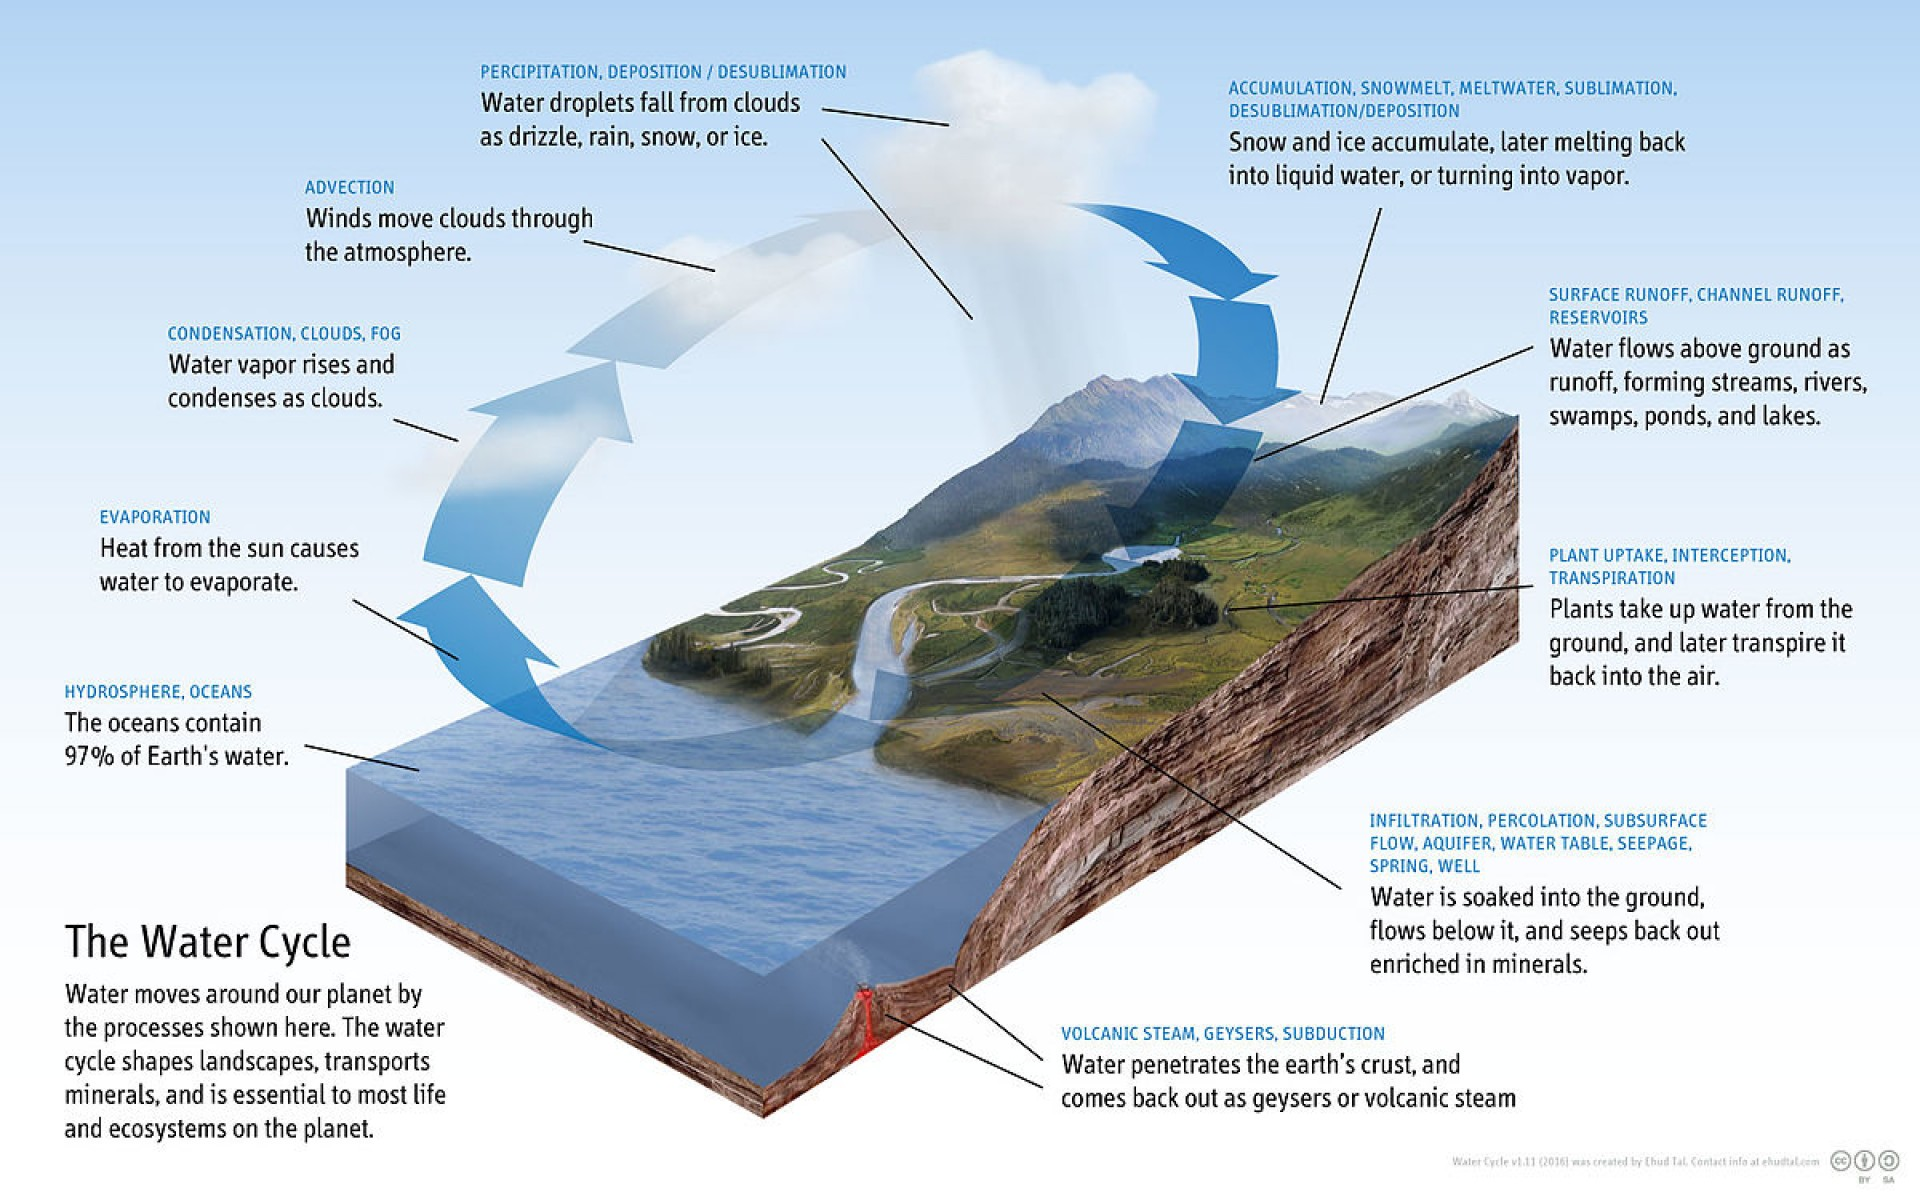 026 1200px Diagram Of The Water Cycle Save Essay Wikipedia Awful Life In Tamil Gujarati 1920